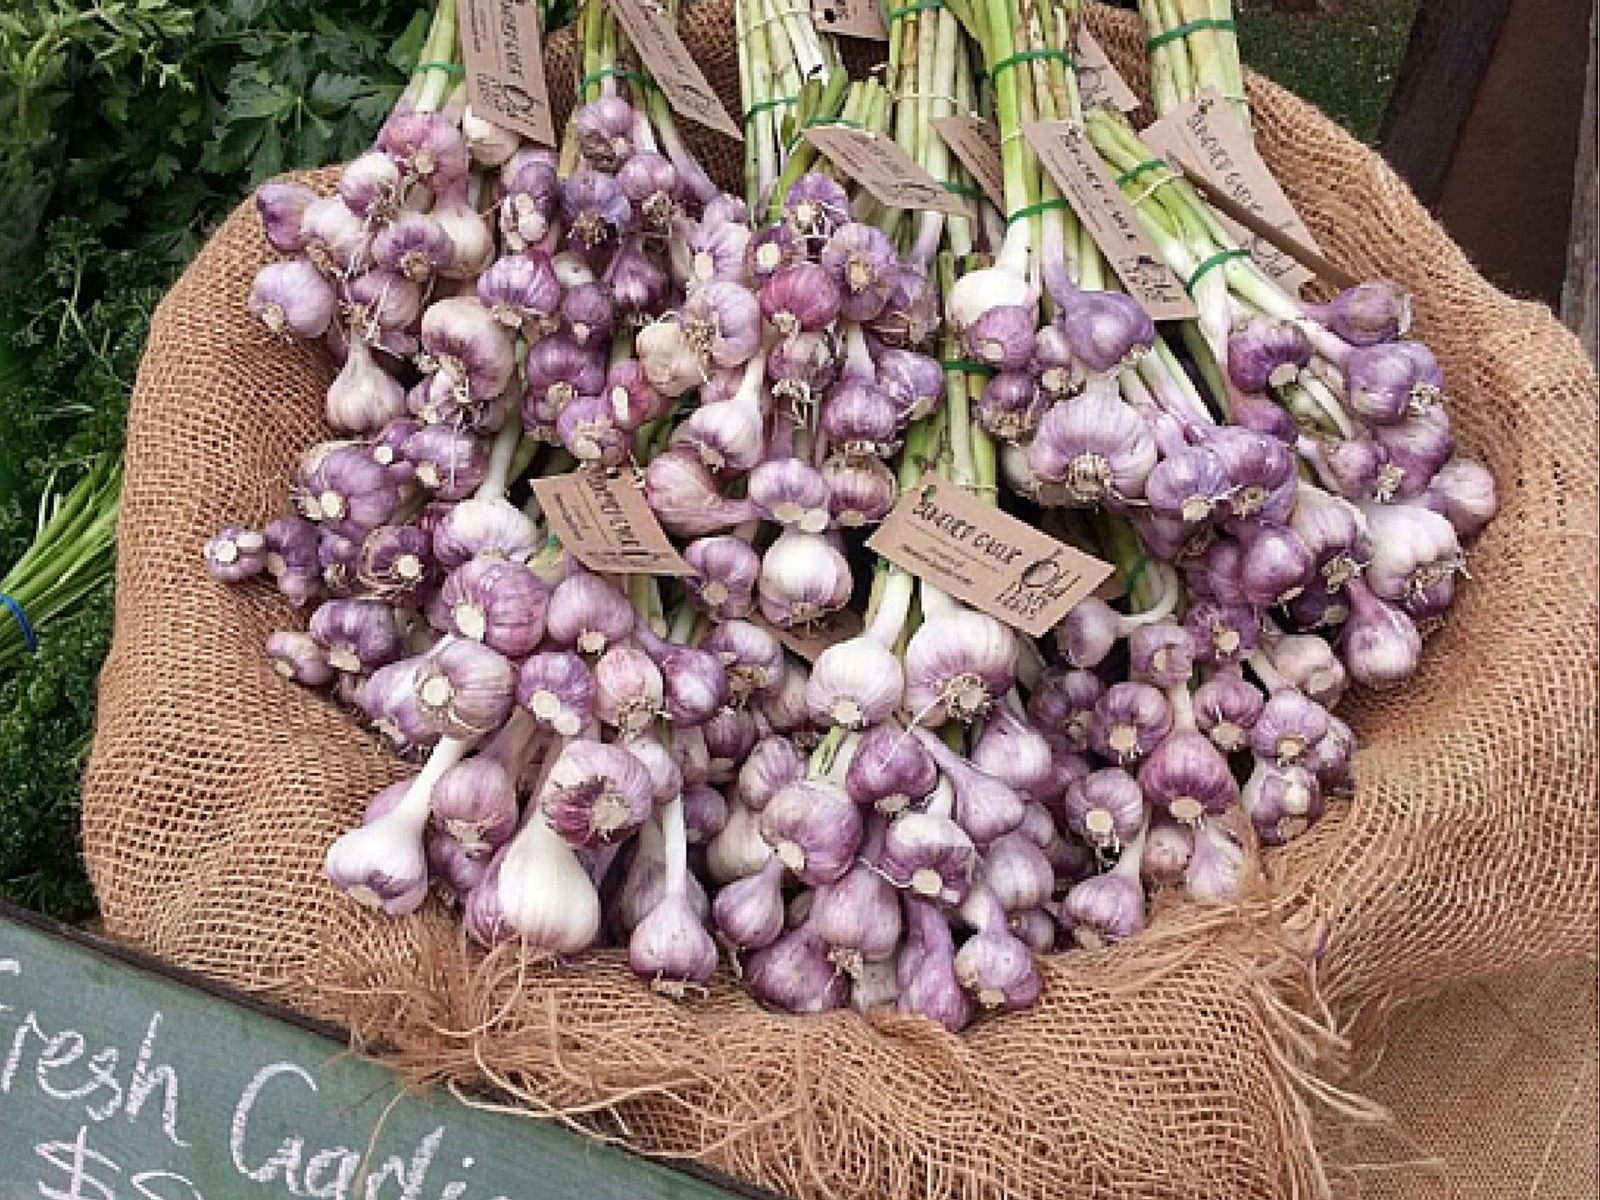 Fresh produce, these garlic bulbs are from Old Tyabb Herbs stall - Red Hill Community Market